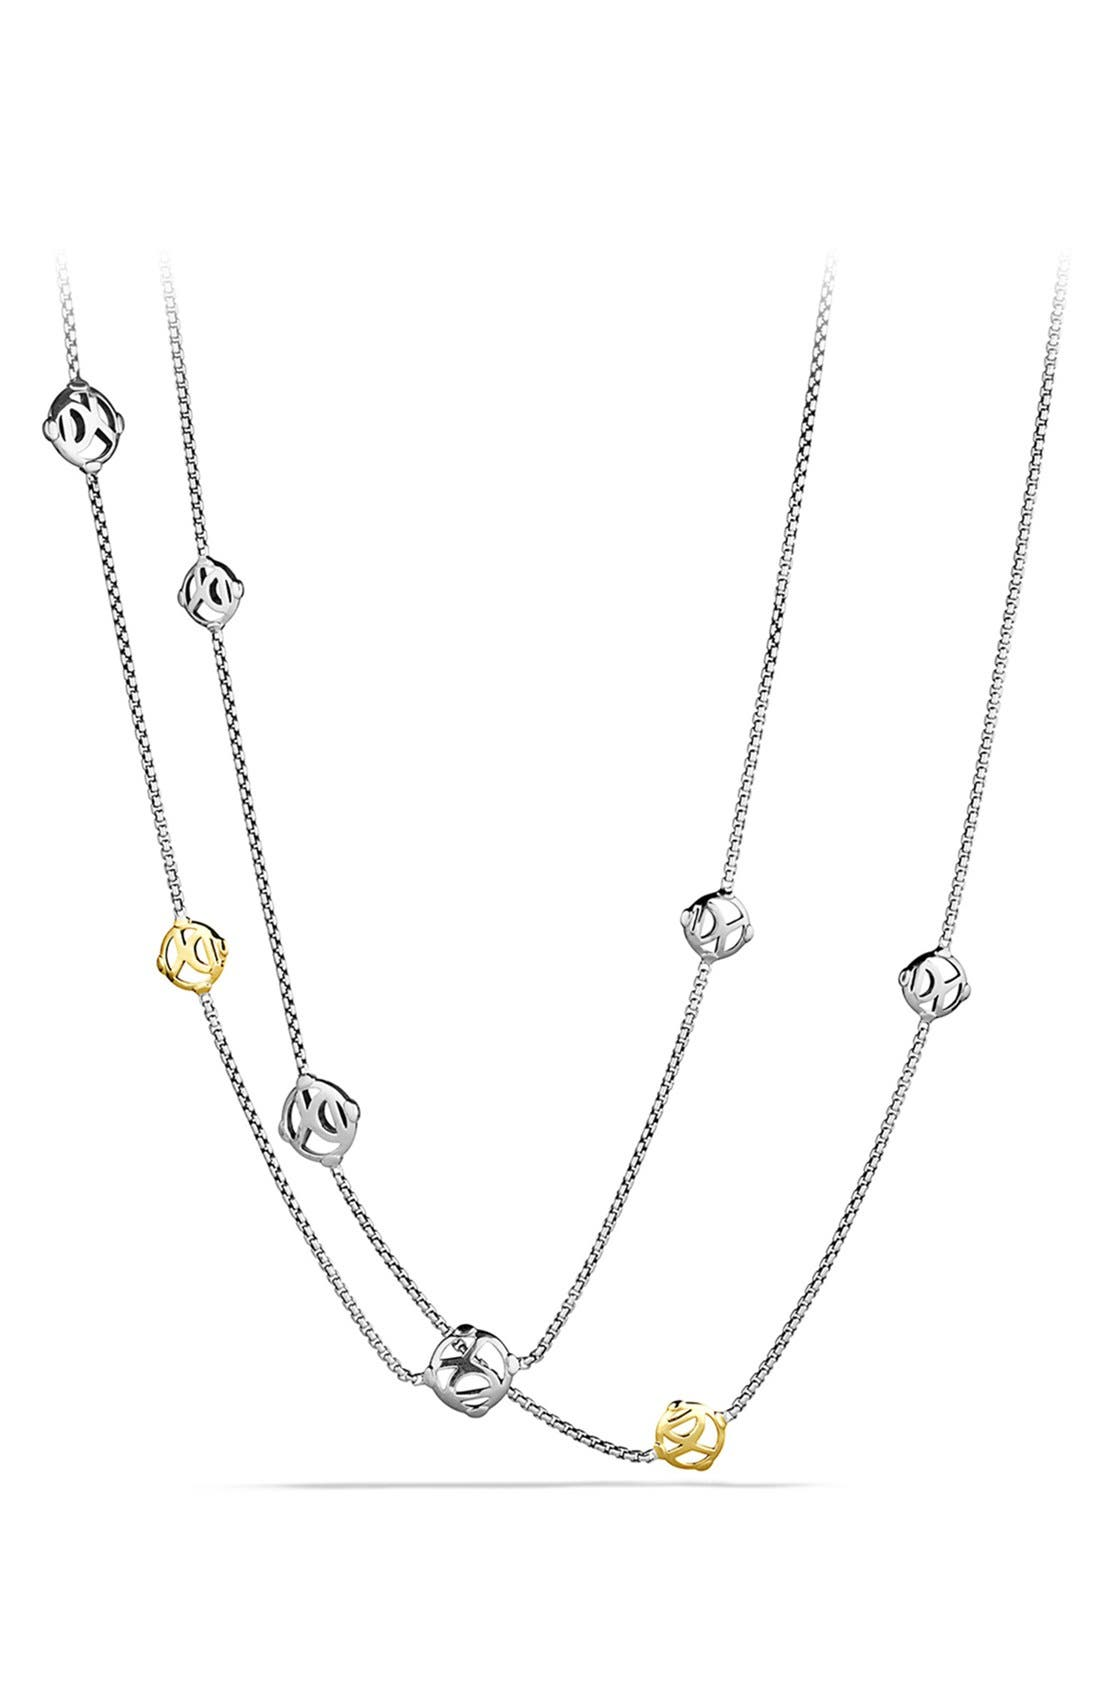 'Chain' DY Logo Chain Necklace with Gold,                             Main thumbnail 1, color,                             040